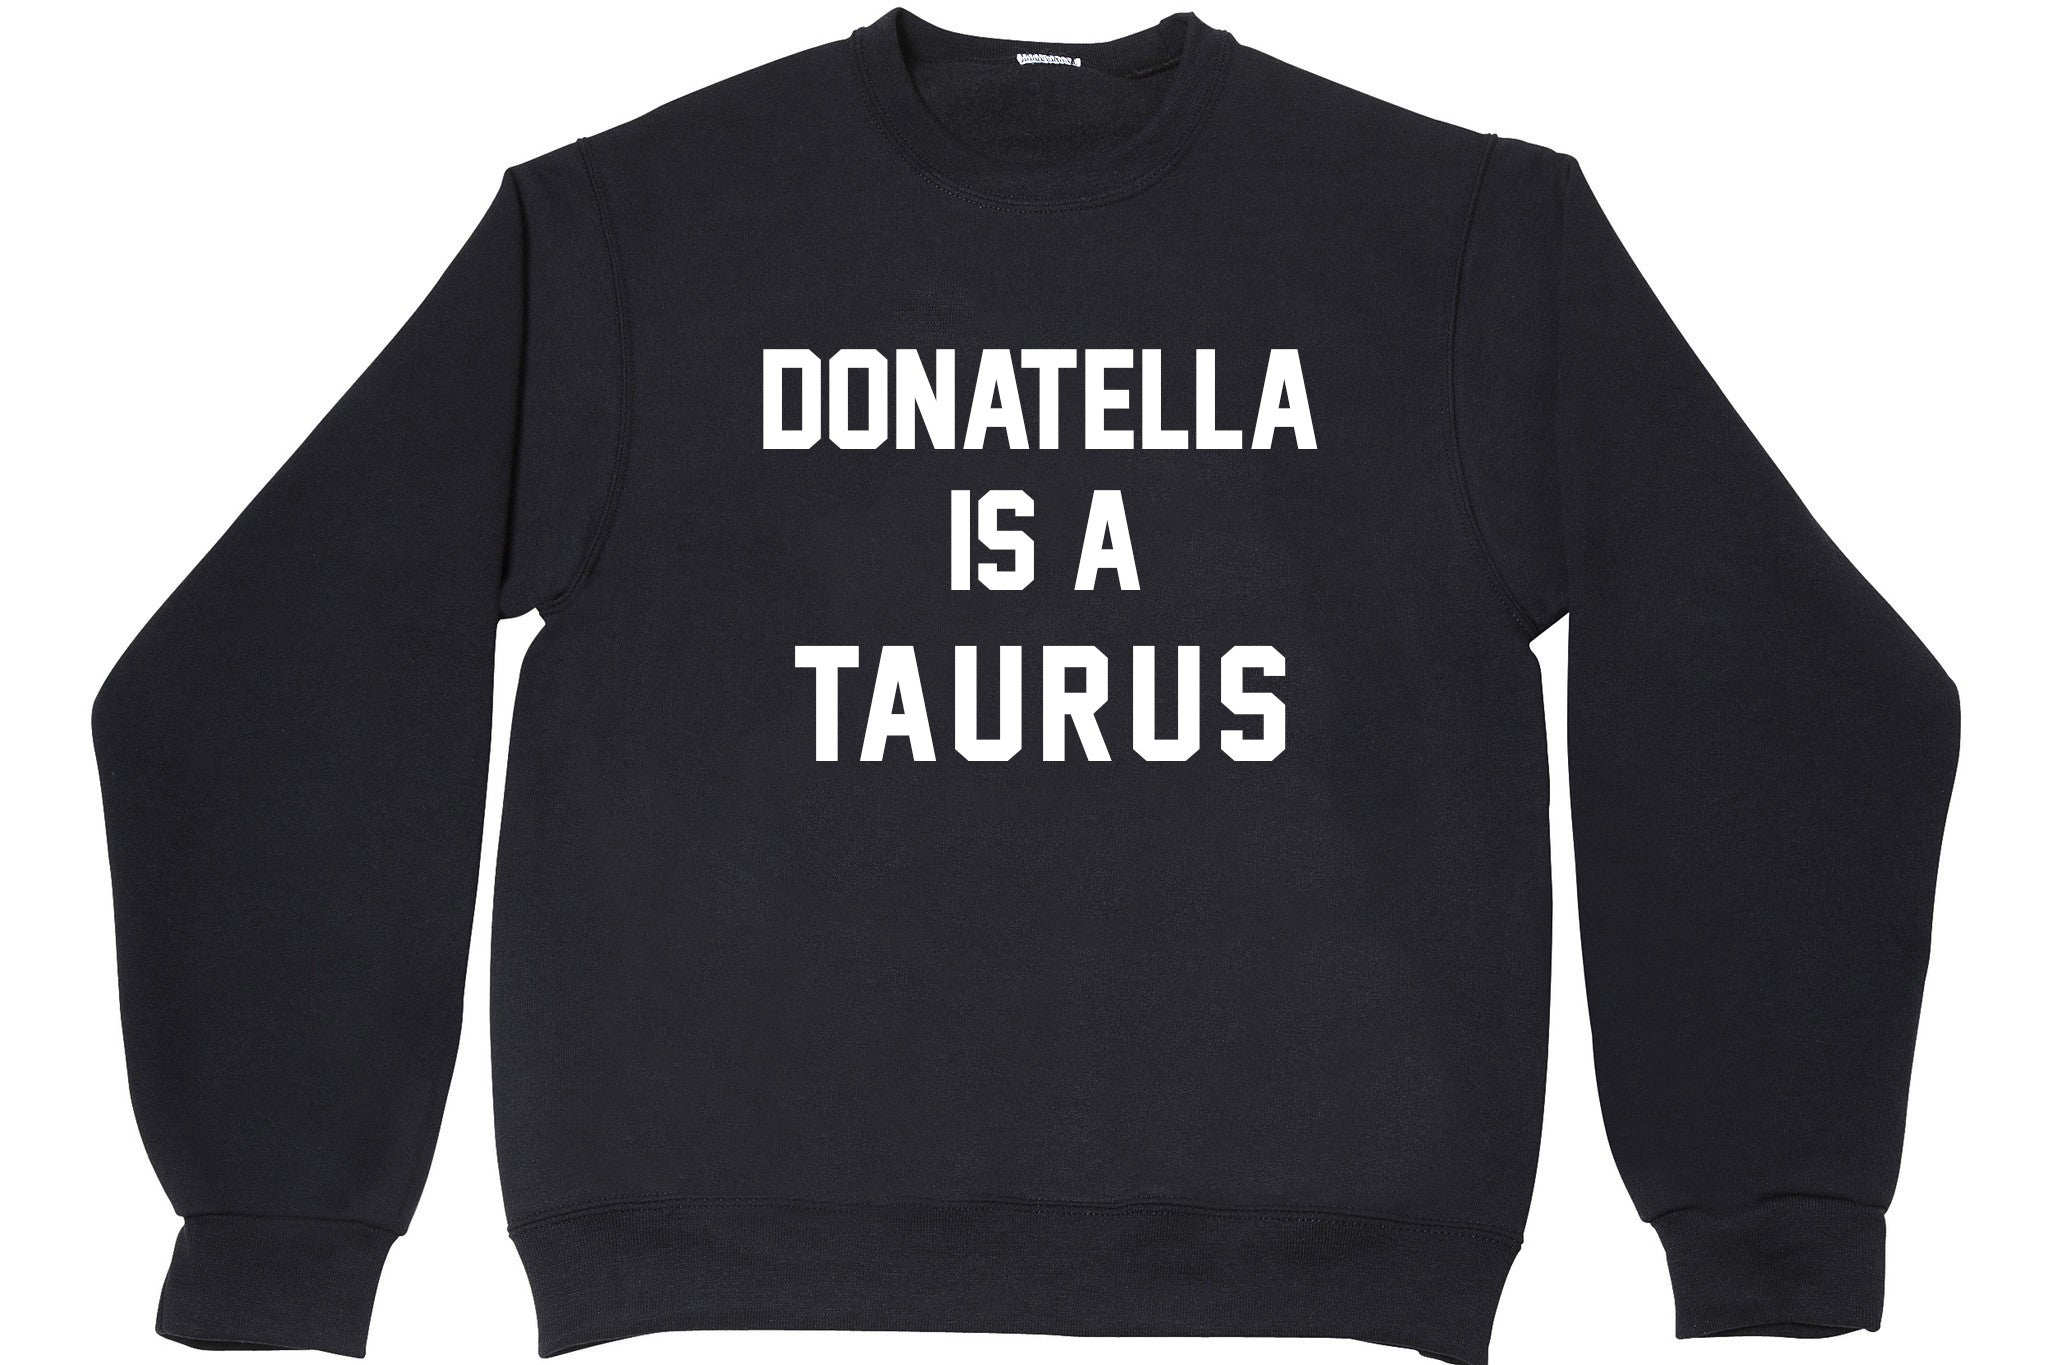 DONATELLA IS A TAURUS